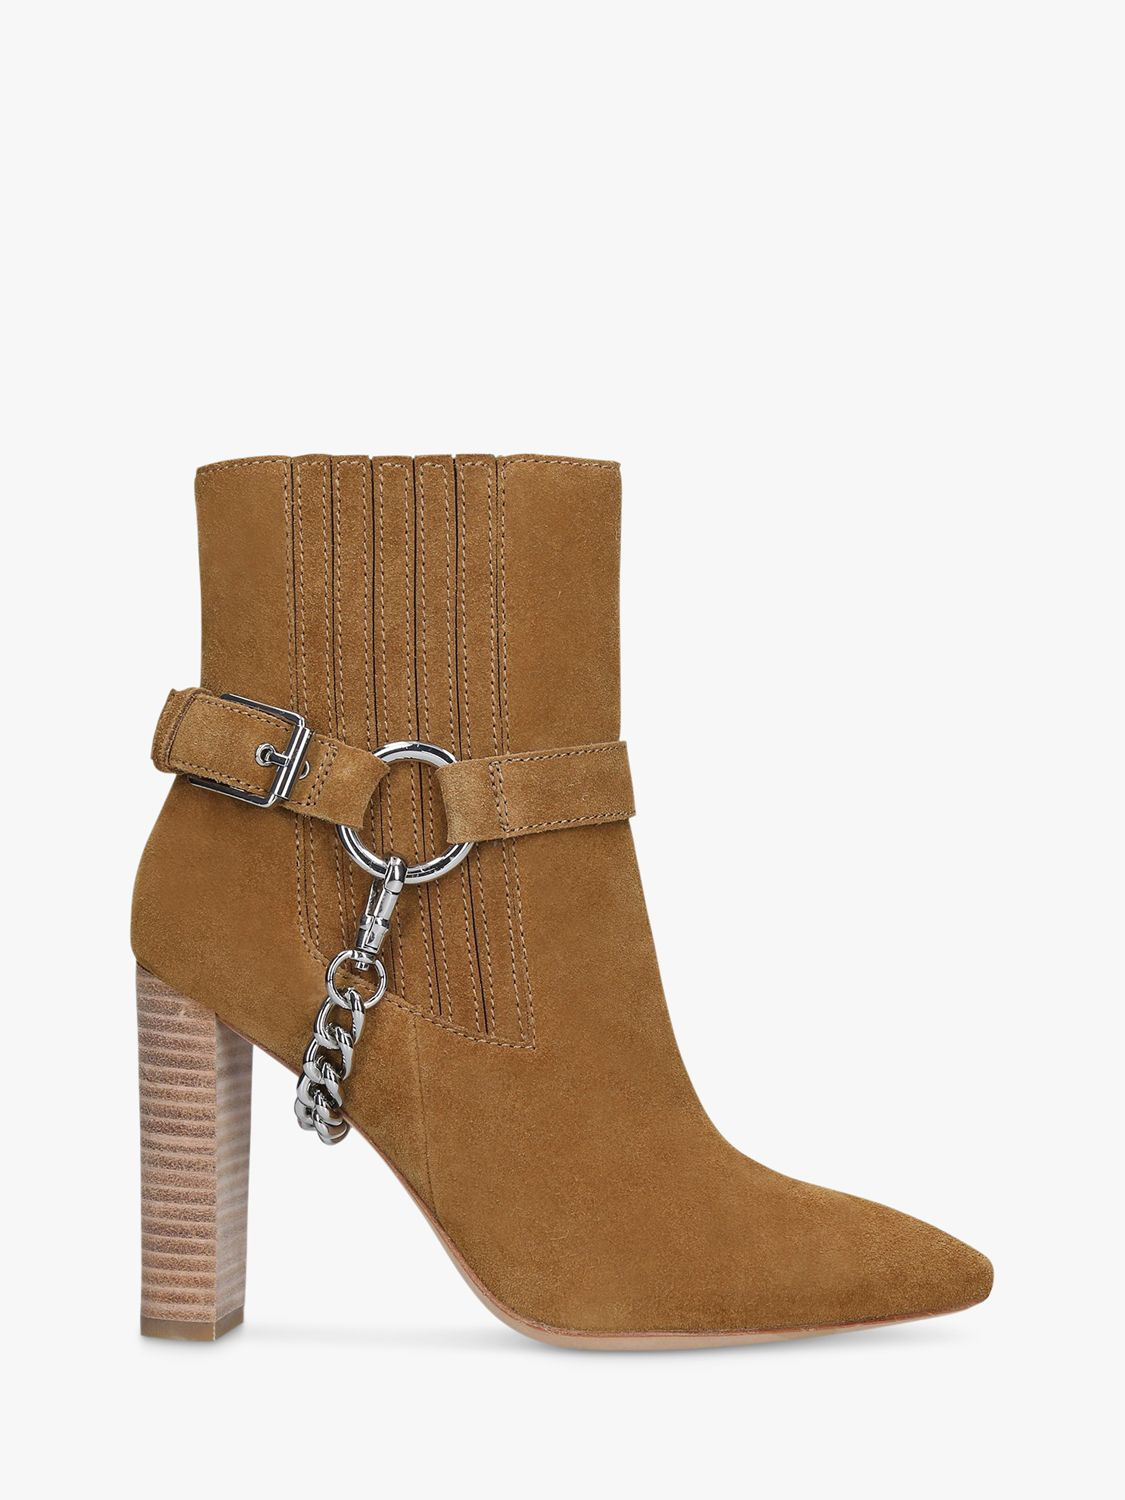 Paige Paige London Suede Ankle Boots, Brown